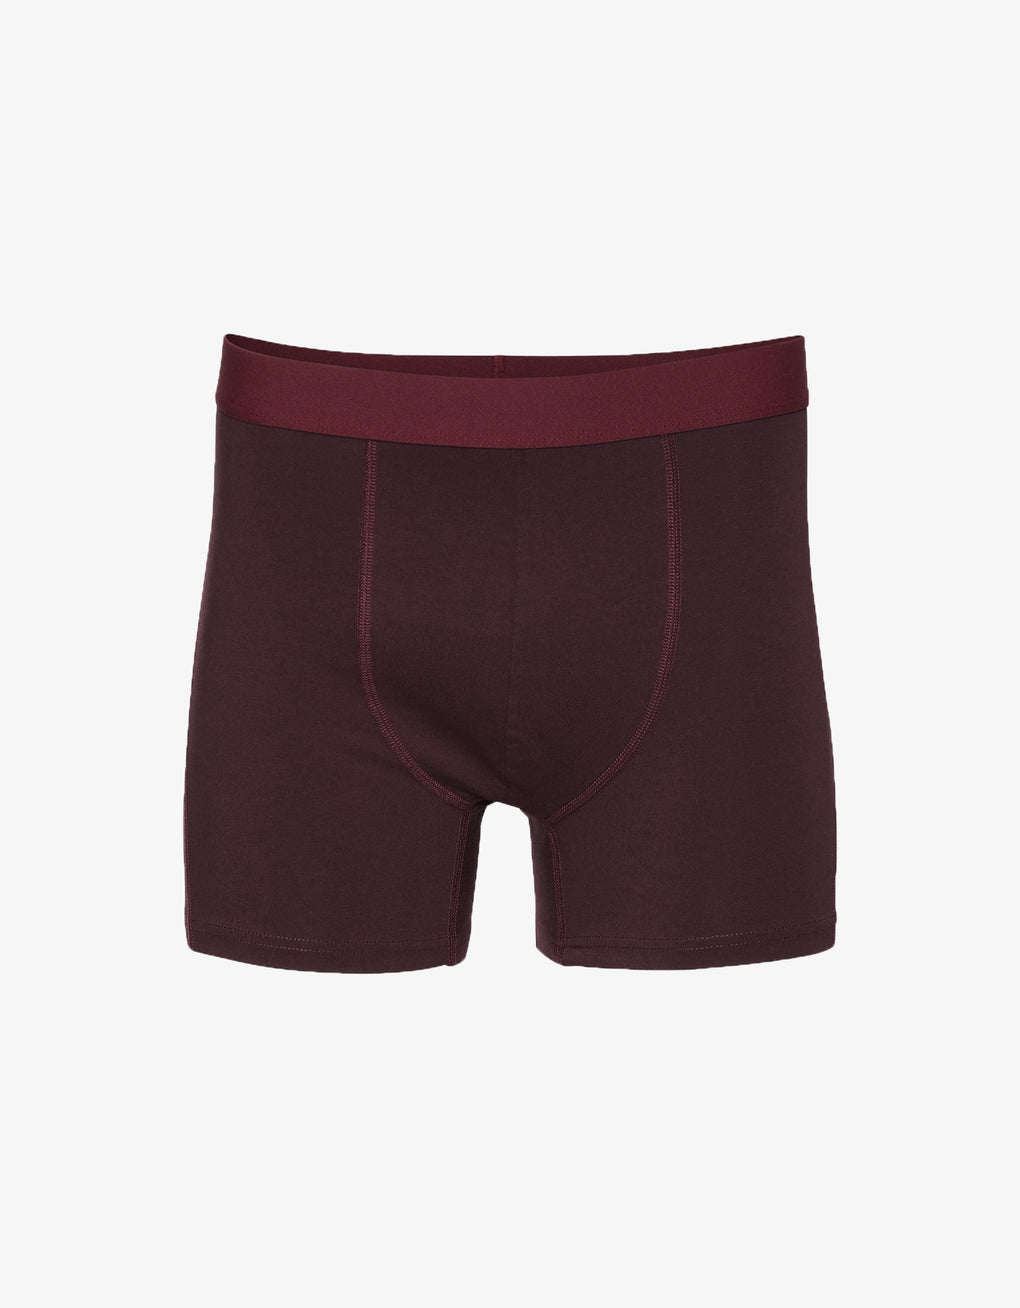 Colorful Standard Classic Organic Boxer Briefs Underwear Oxblood Red